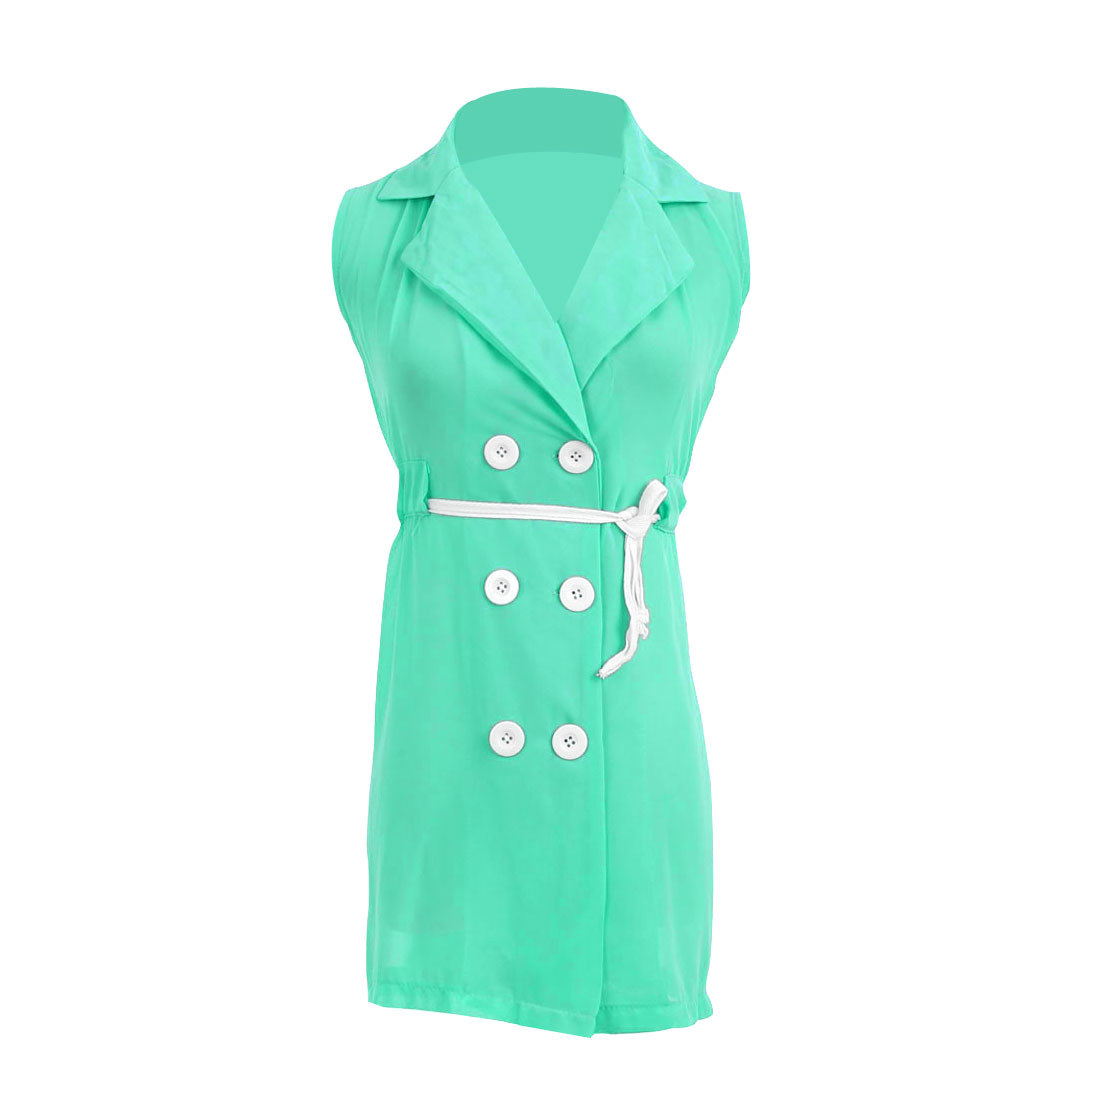 Ladies Chiffon Buttons Front Point Collar Trench Vests Light Green S